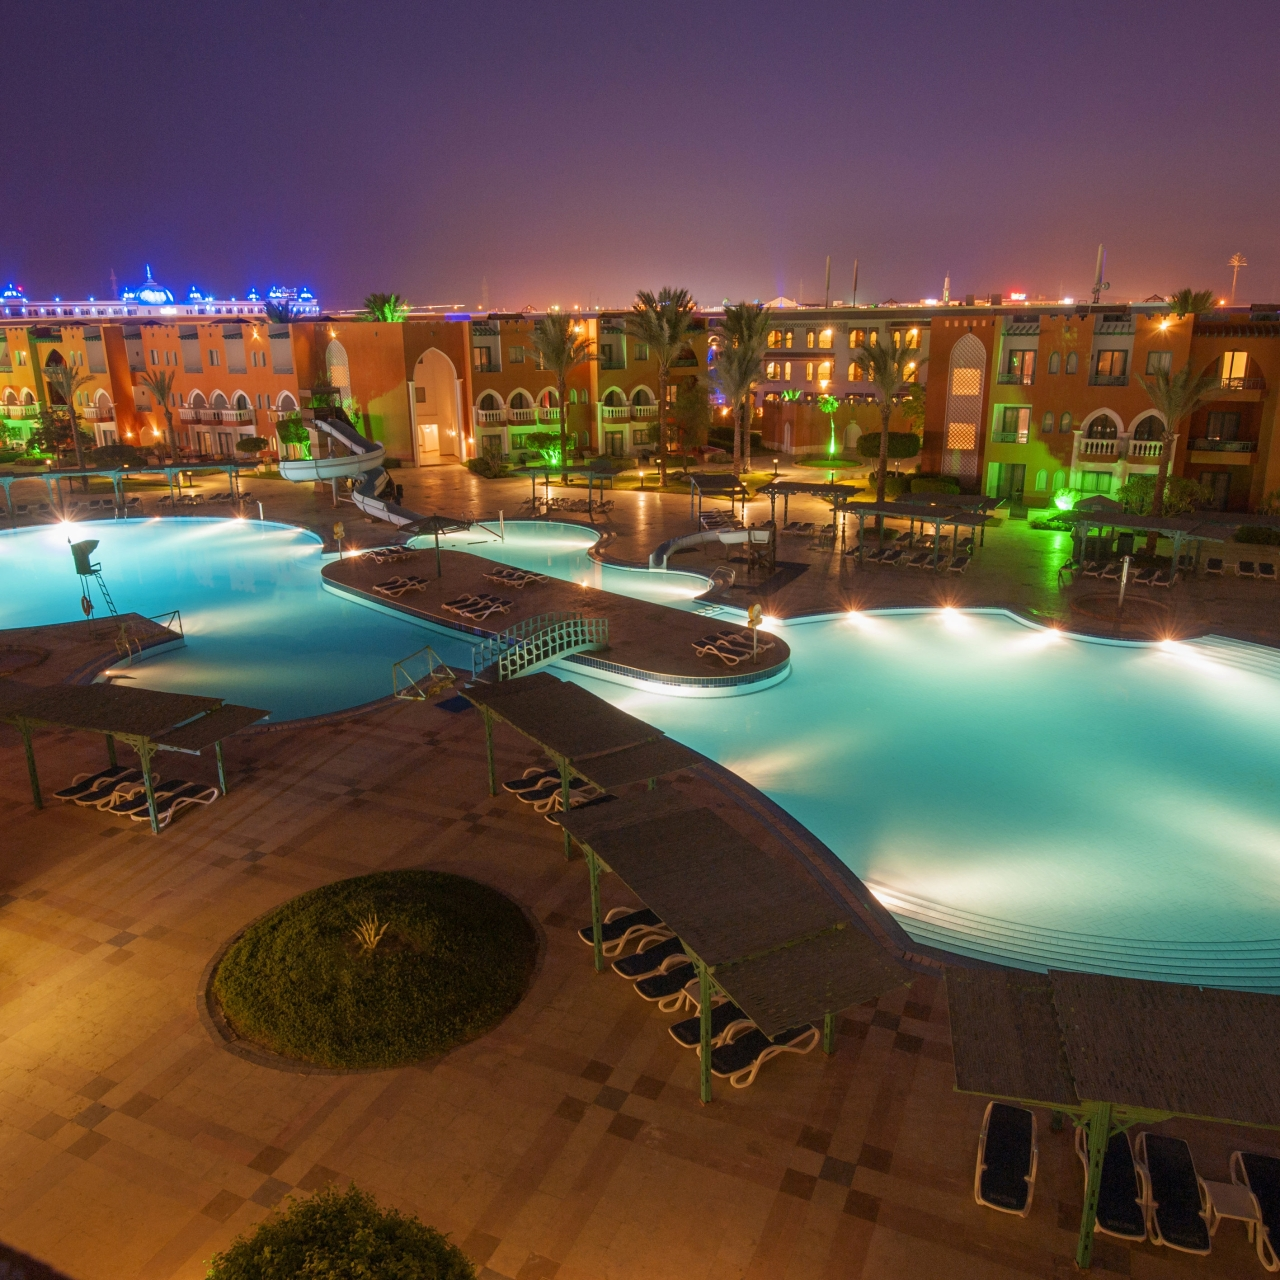 Hotel Sunrise Garden Beach Resort Spa Egypt At Hrs With Free Services